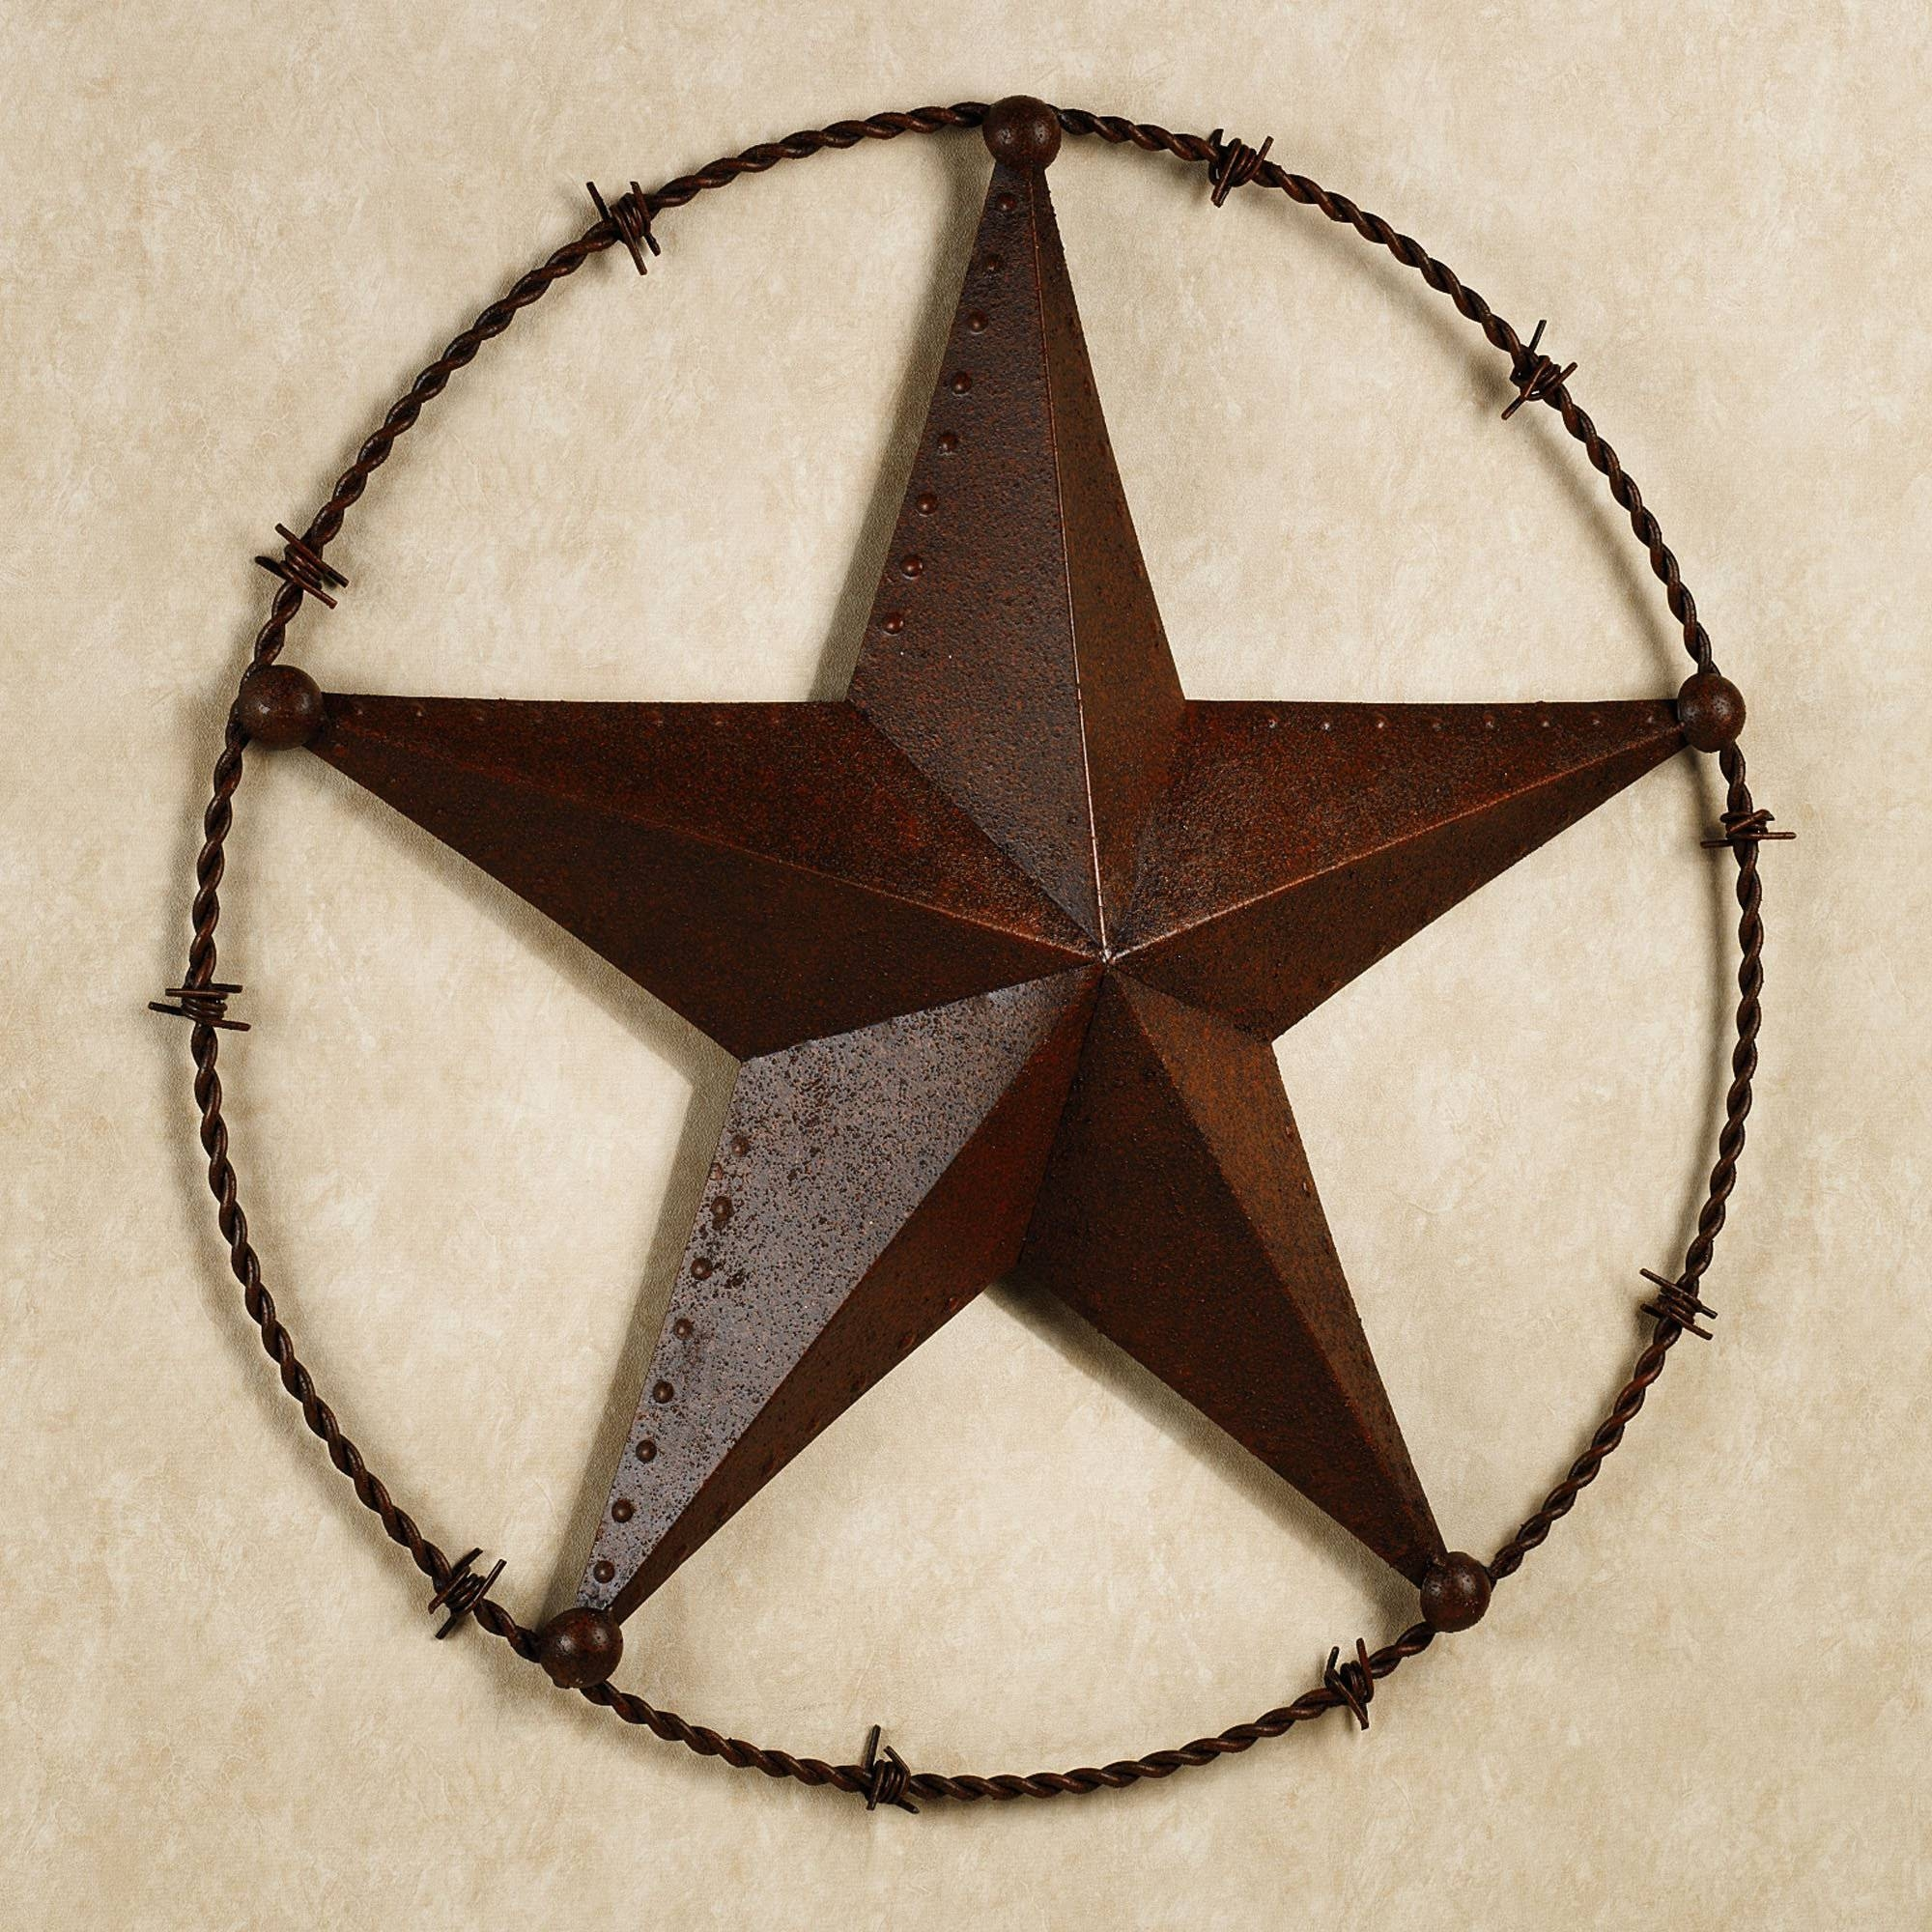 Fascinating Large Metal Star Wall Decoration 114 Large Metal Texas For Current Texas Star Metal Wall Art (Gallery 2 of 20)